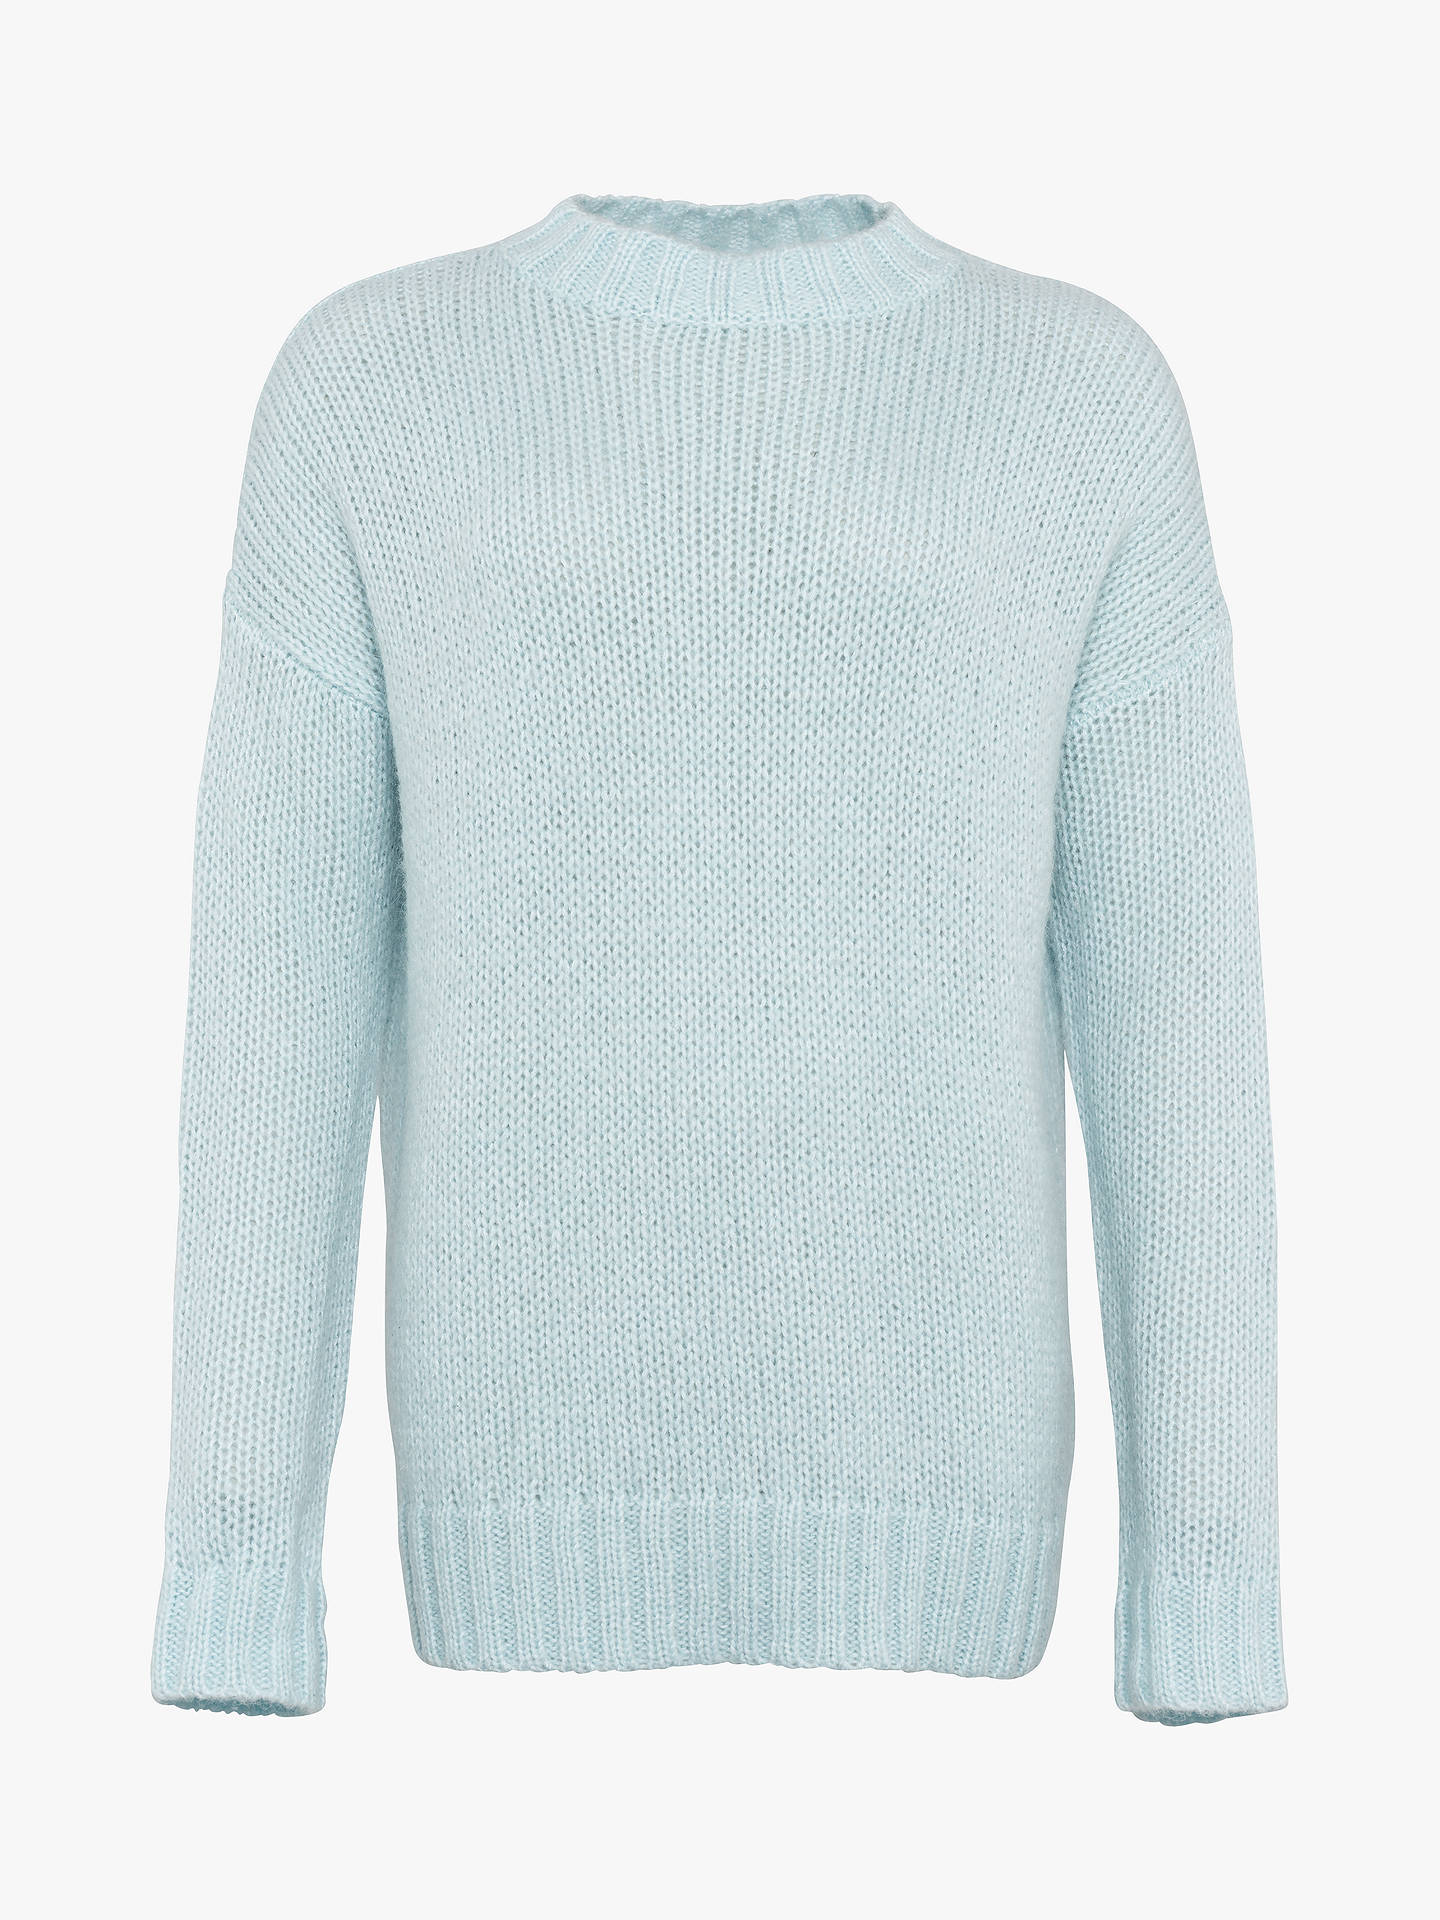 Buy French Connection Crew Neck Jumper, Light Frosty, XS Online at johnlewis.com